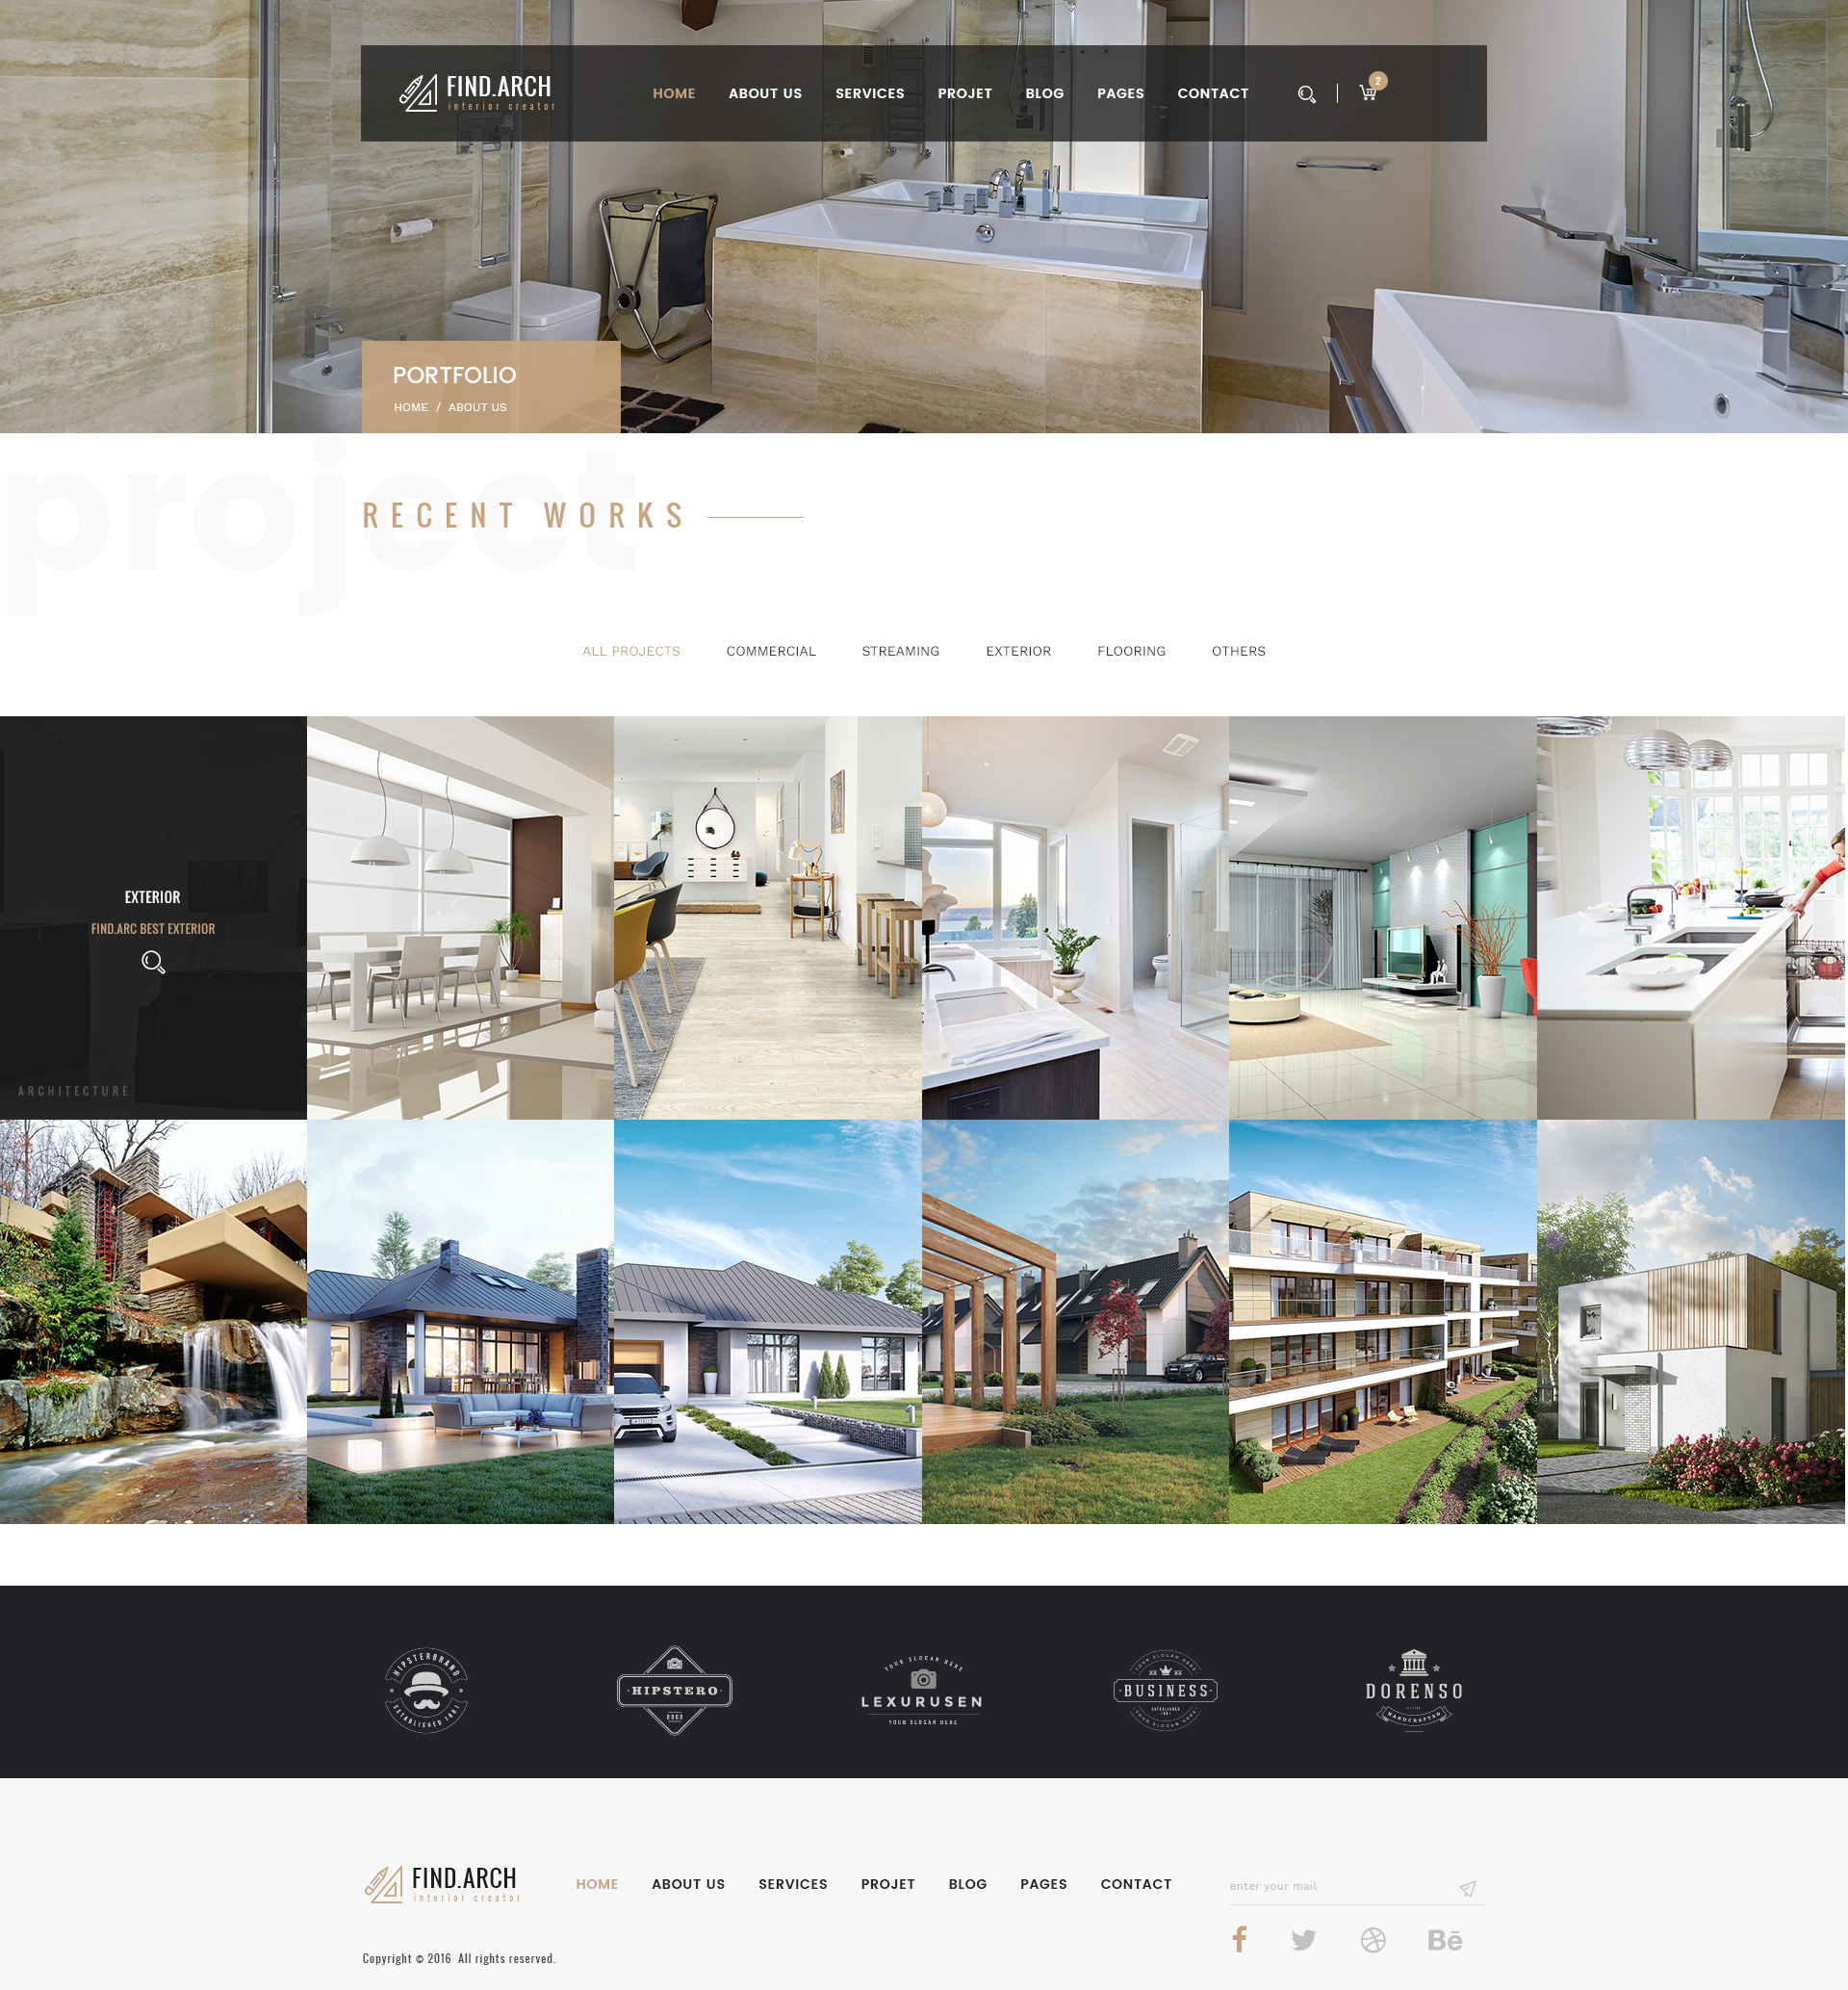 Find. - Interior Design, rchitecture PSD emplate by themegrid - ^